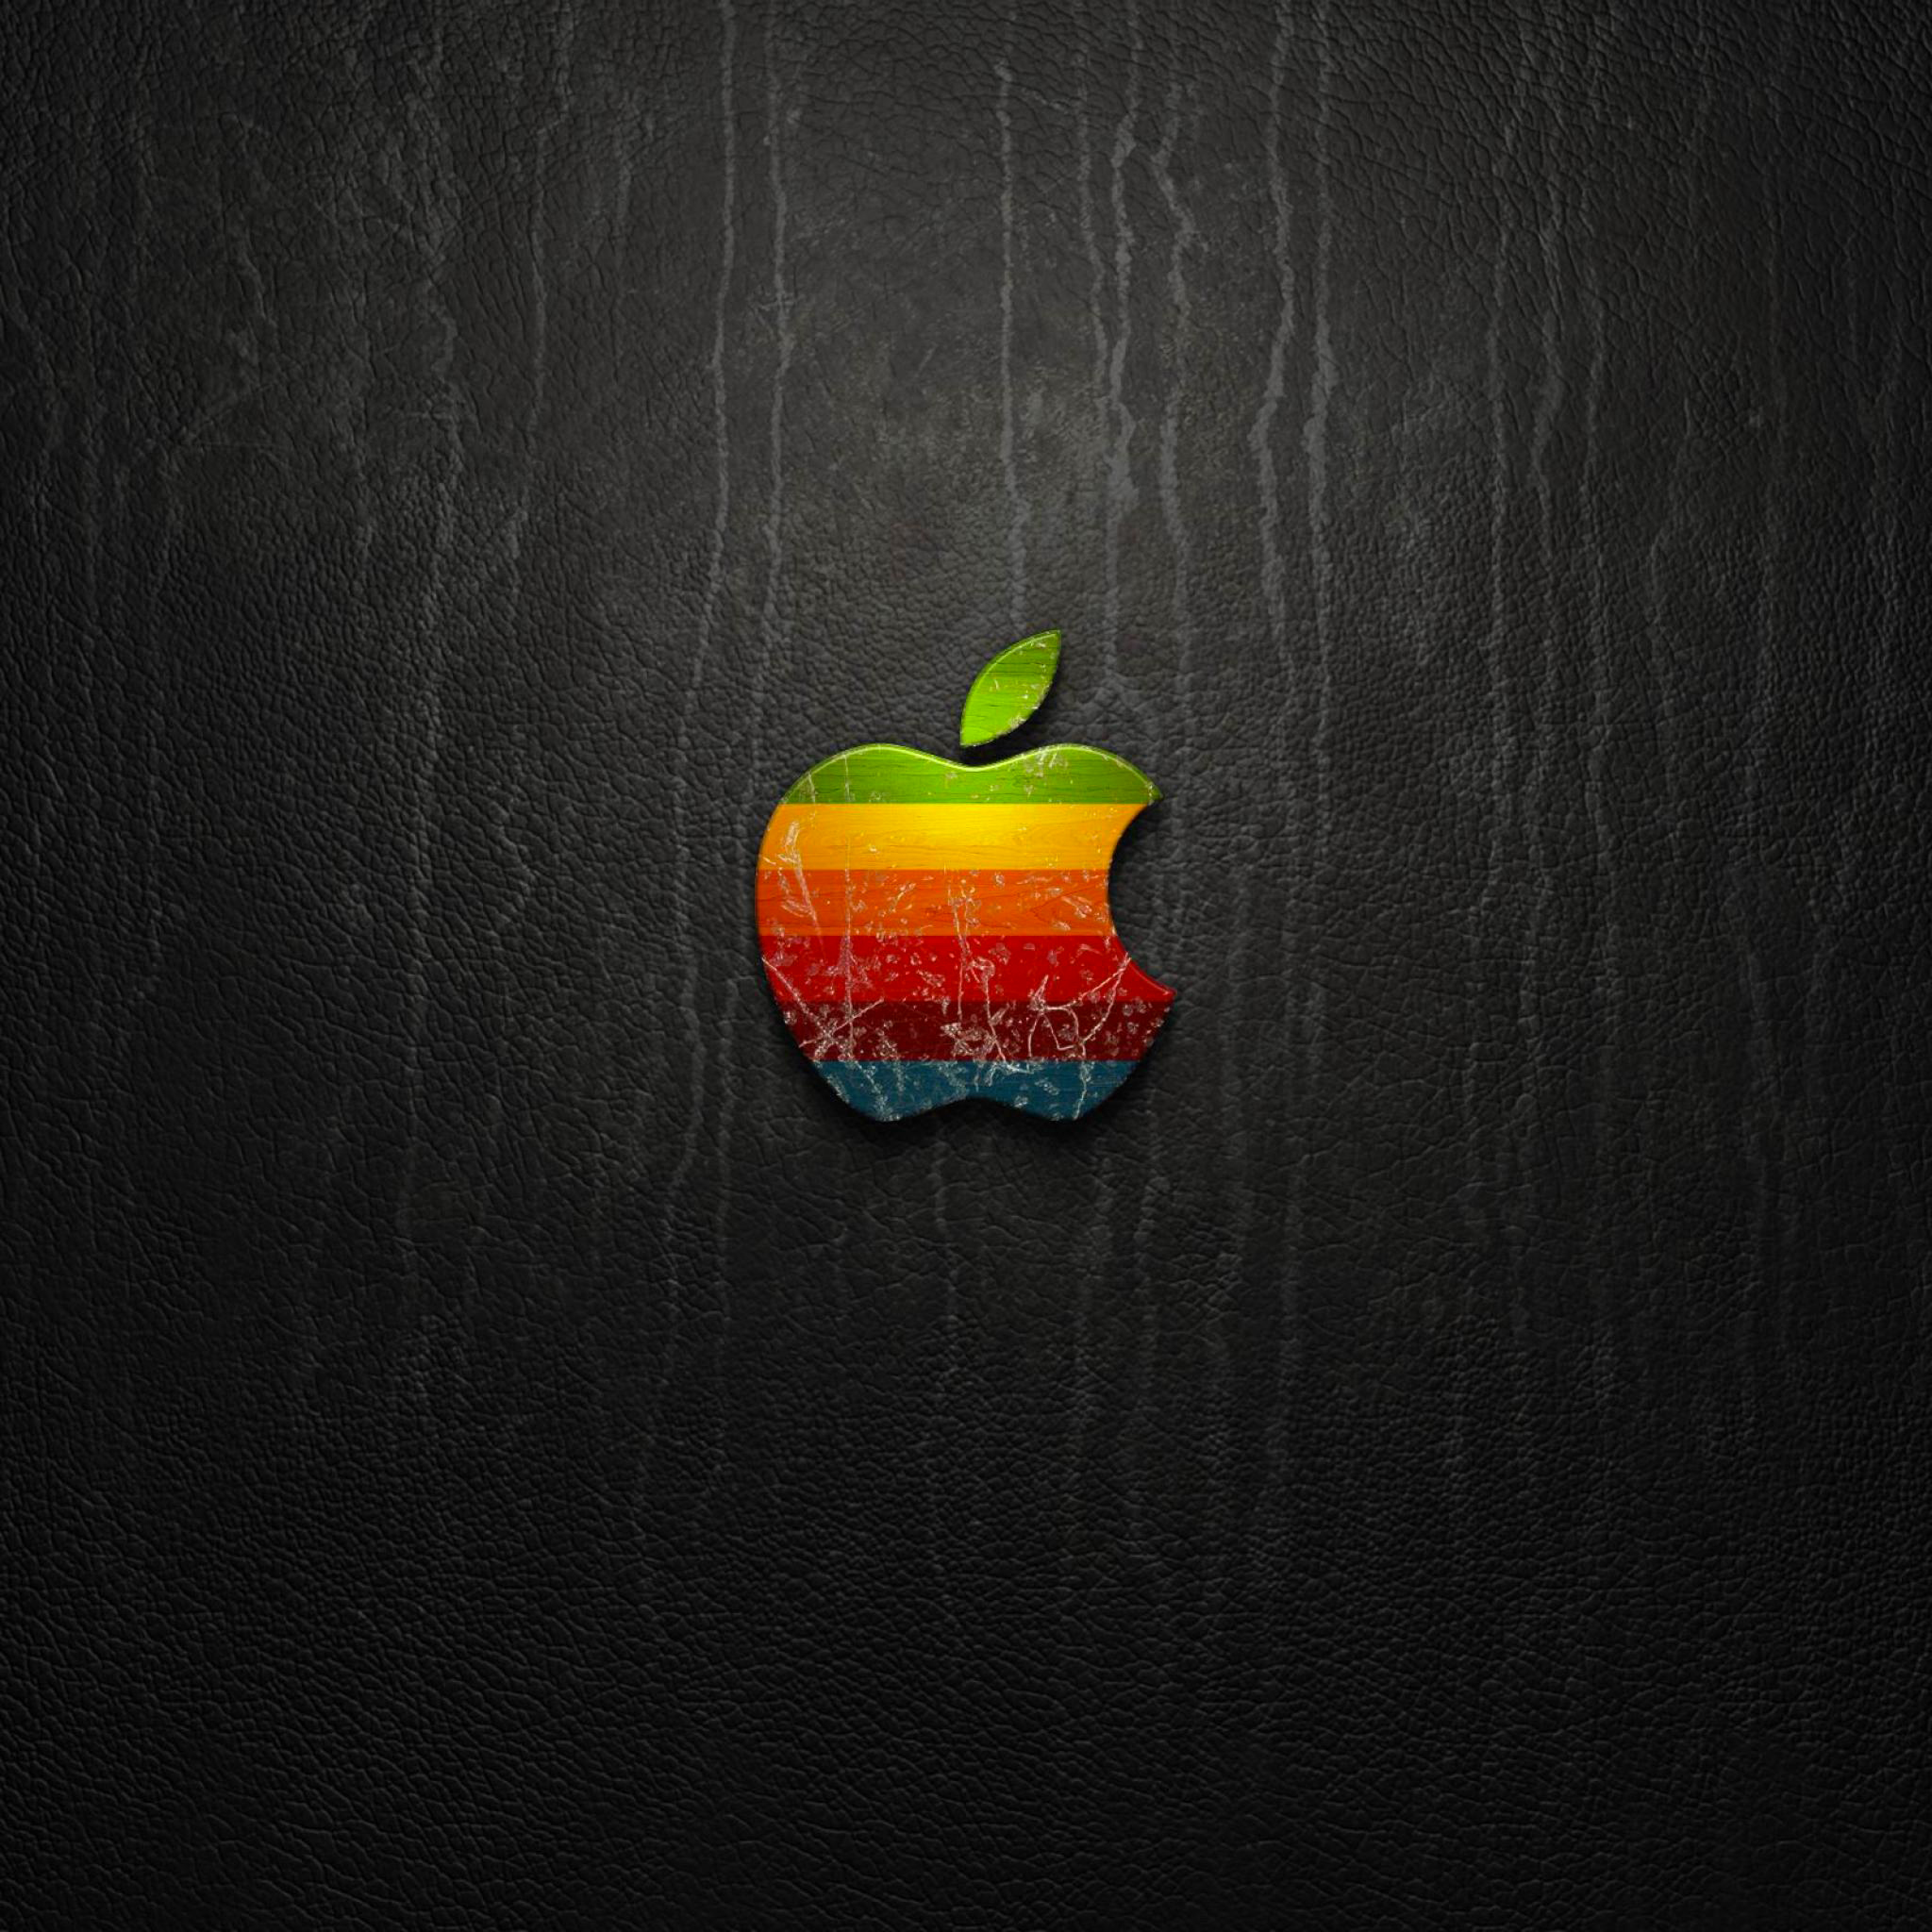 Apple-Leather-3Wallpaper-iPad-Retina